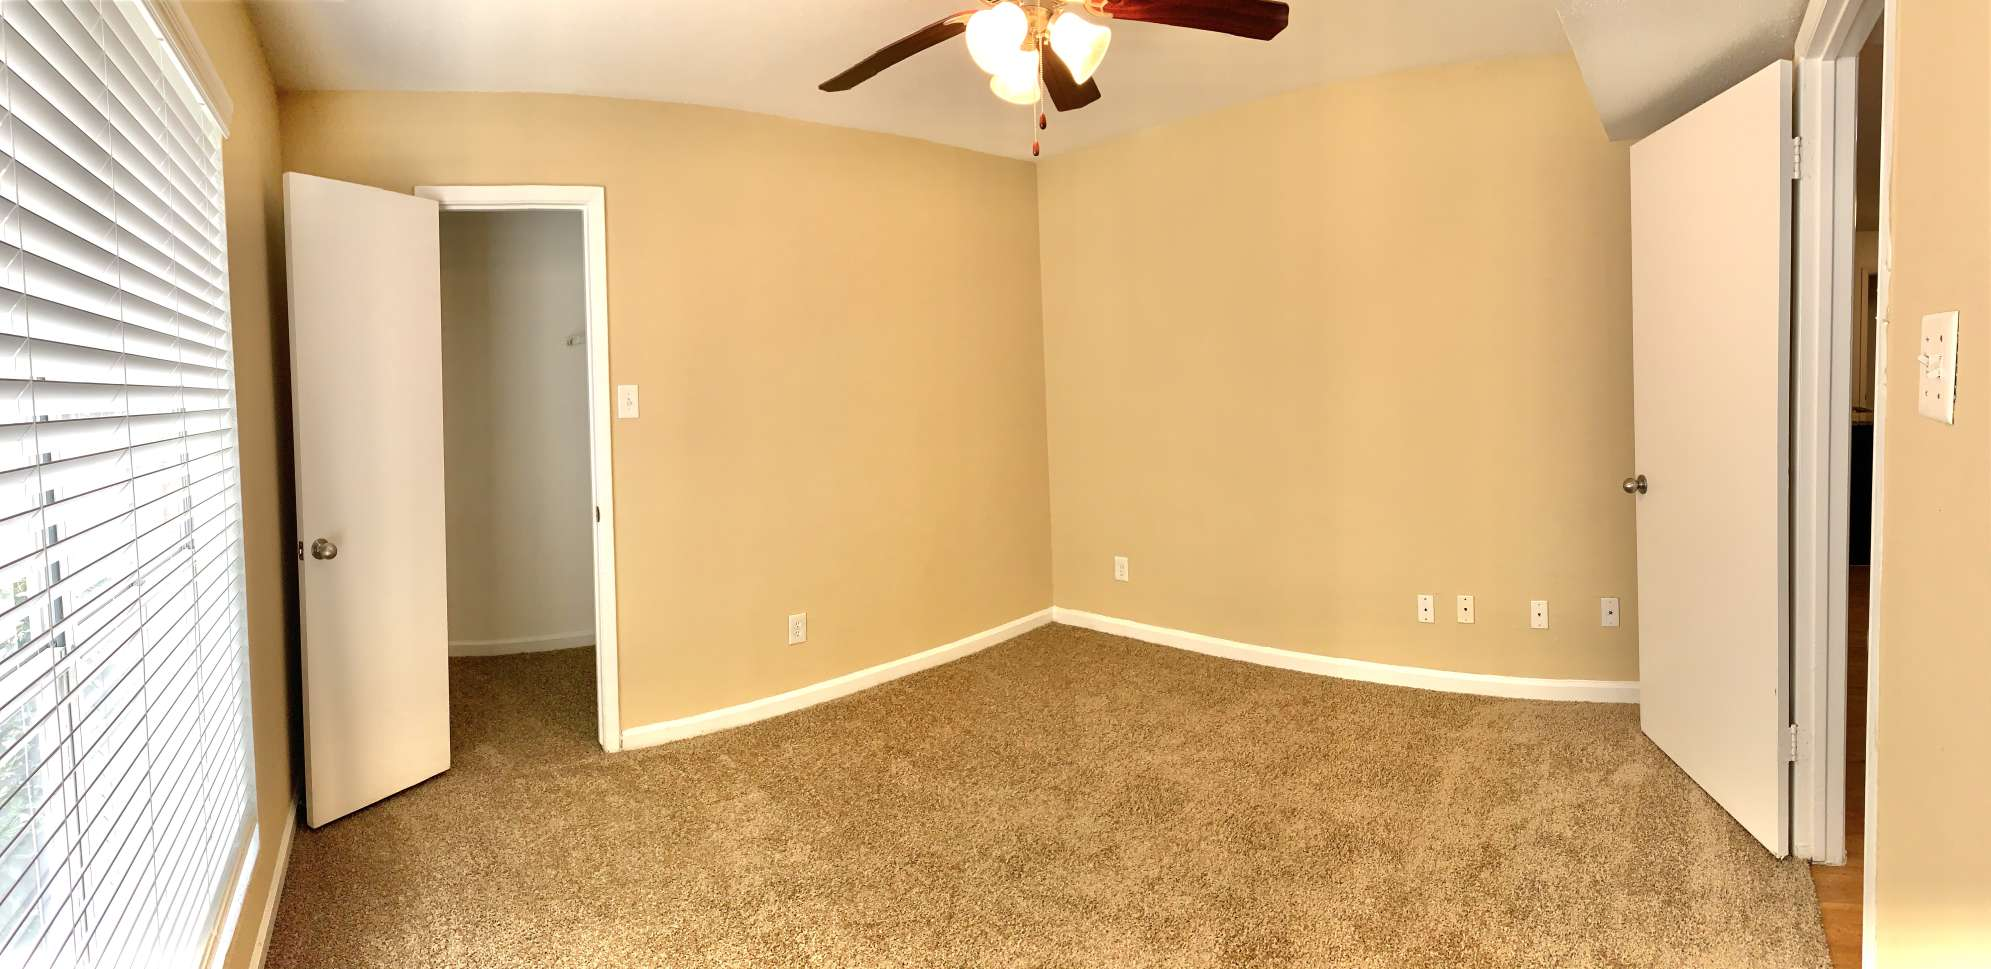 Carpeted Flooring at Ashford Pointe Apartments in Houston, Texas